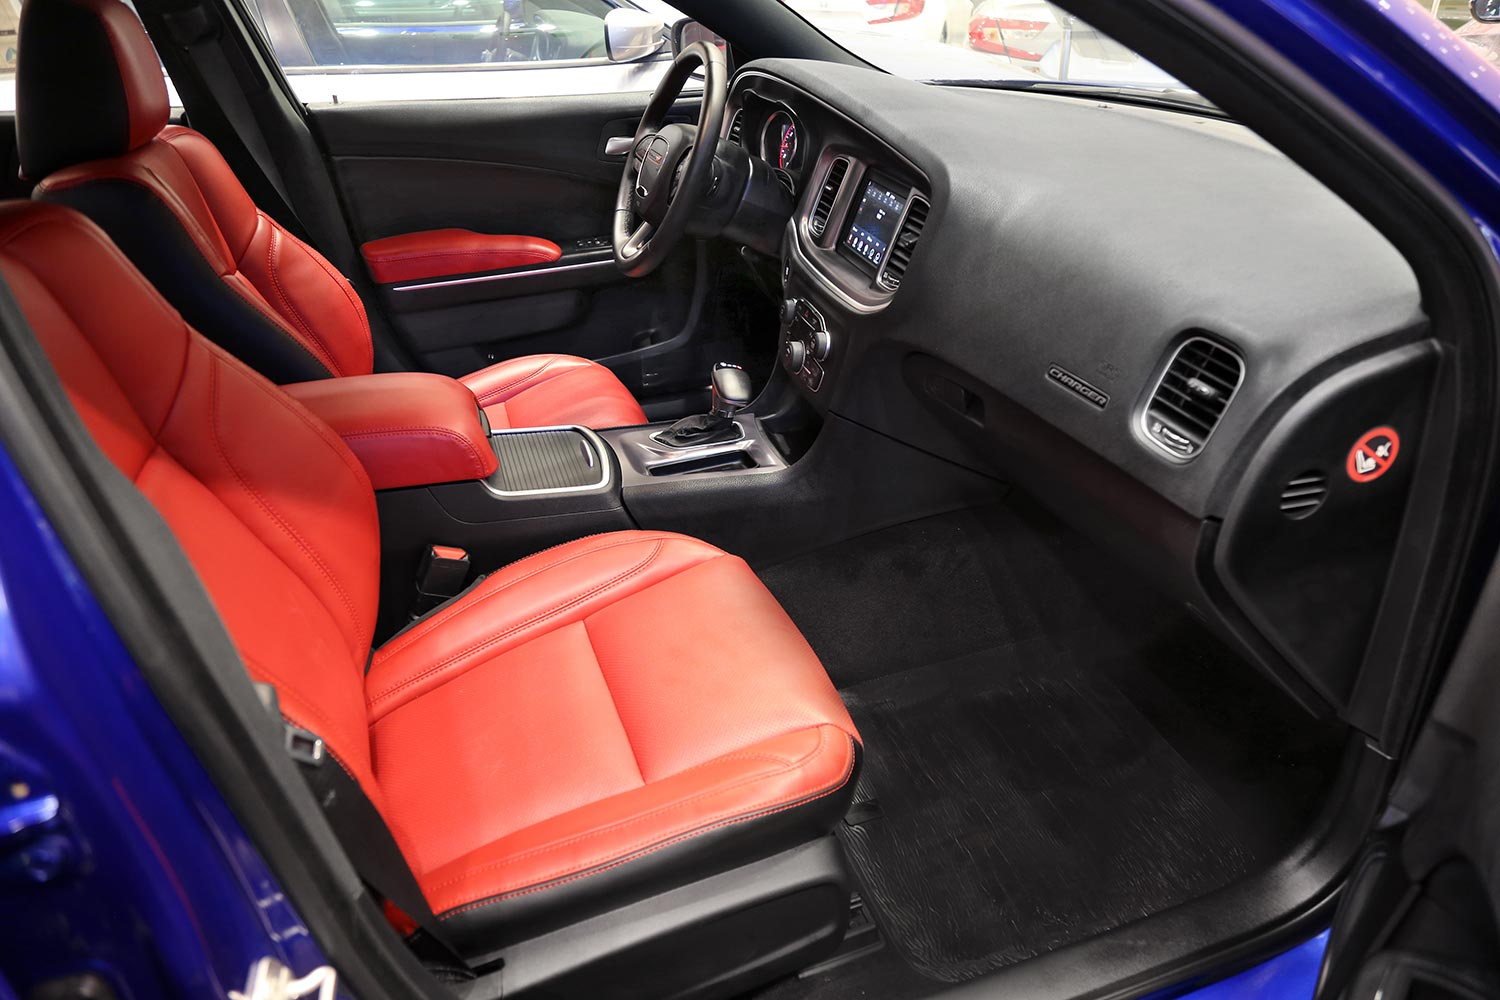 Interior Image for  DODGE Charger SXT-A red leather 2020